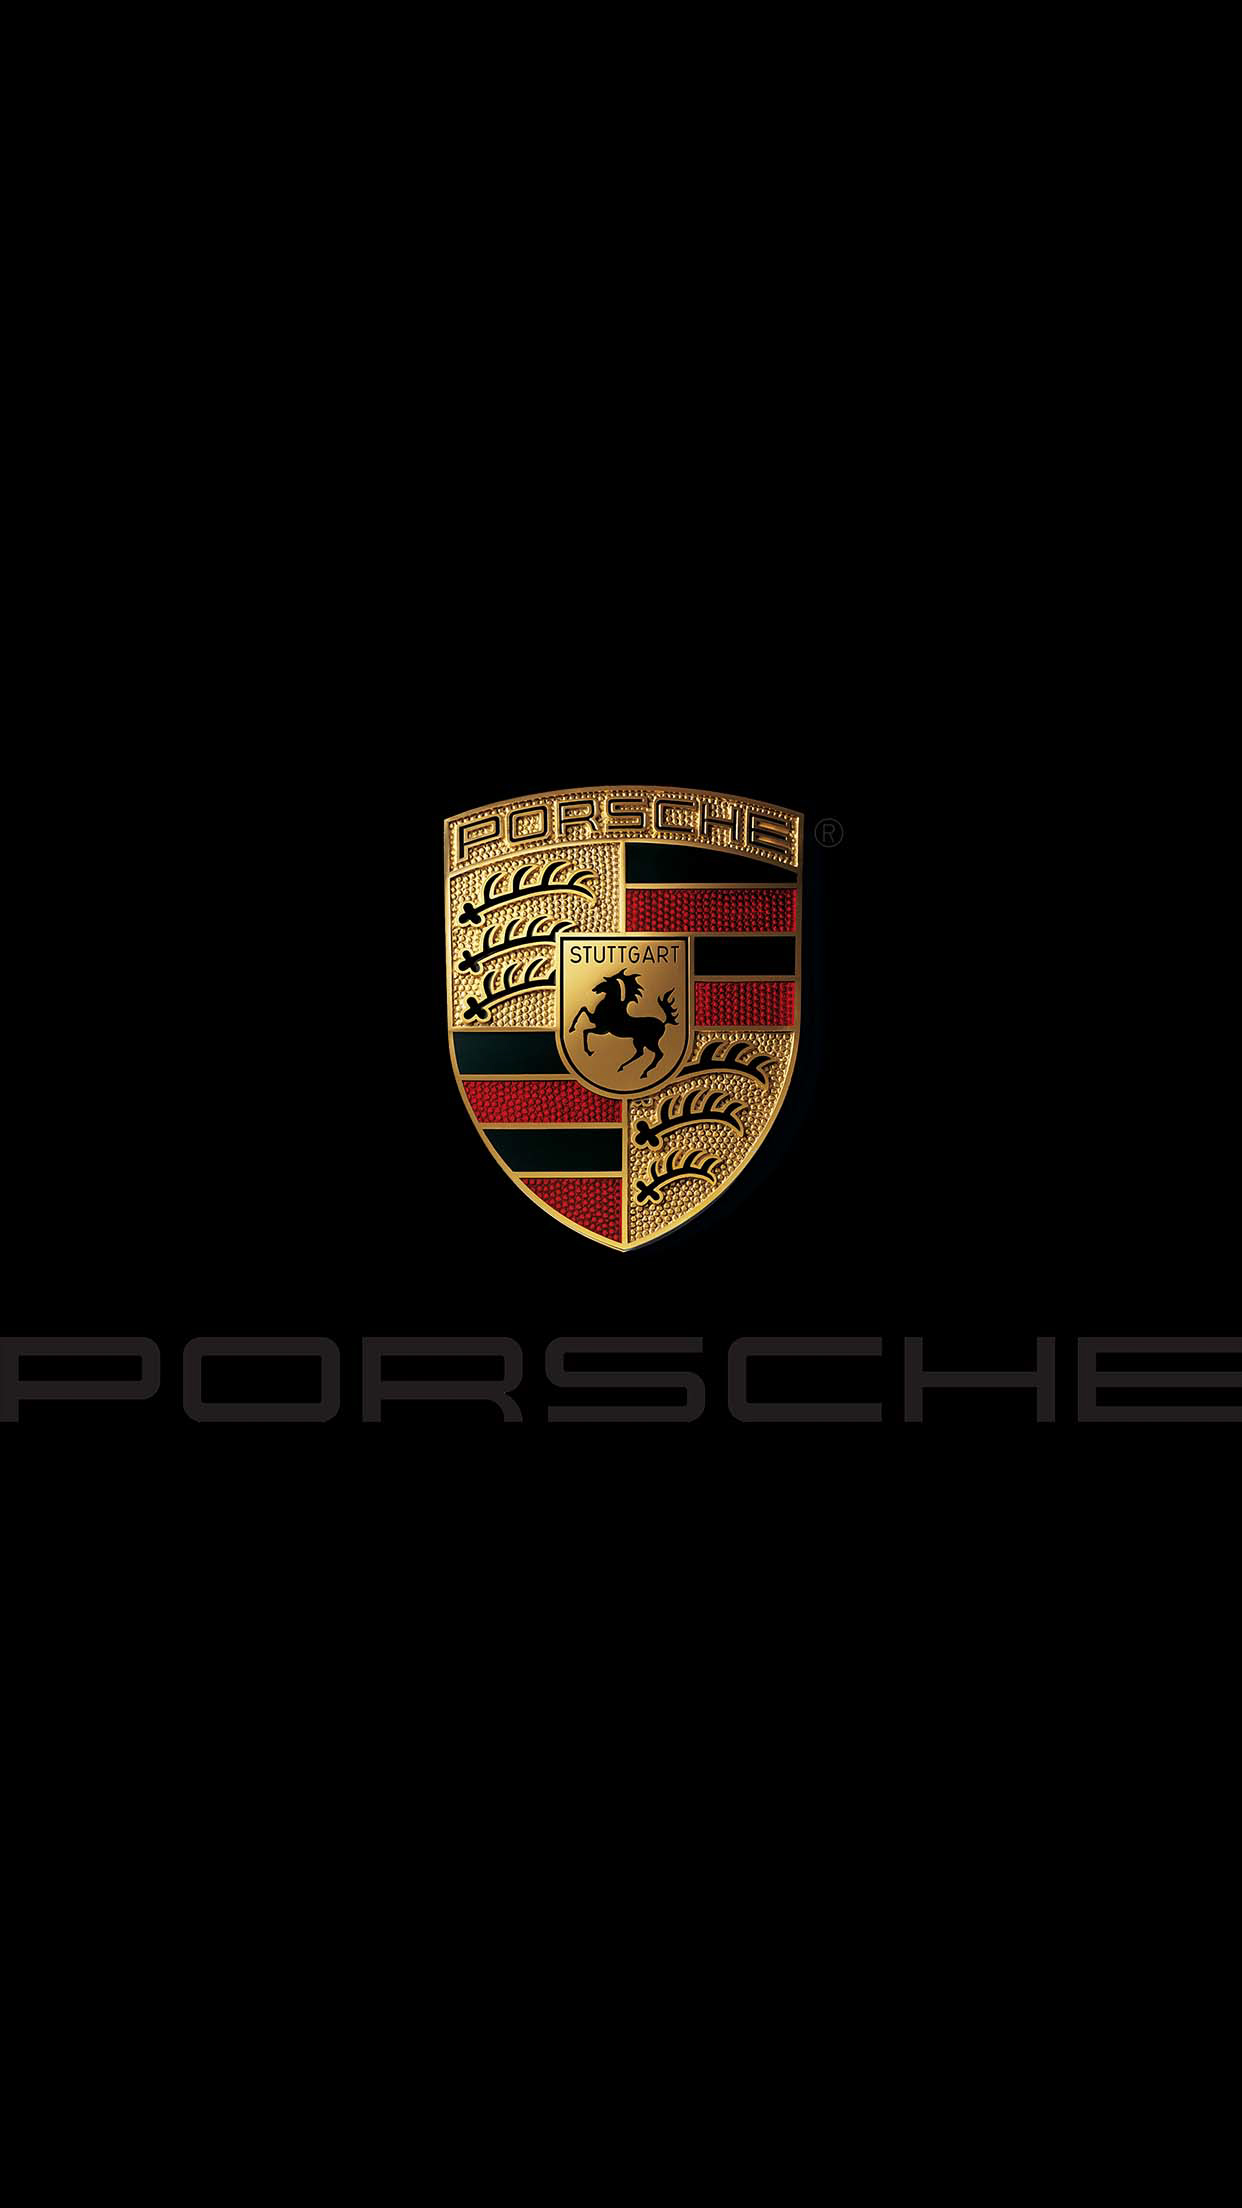 Porsche Black Wallpaper